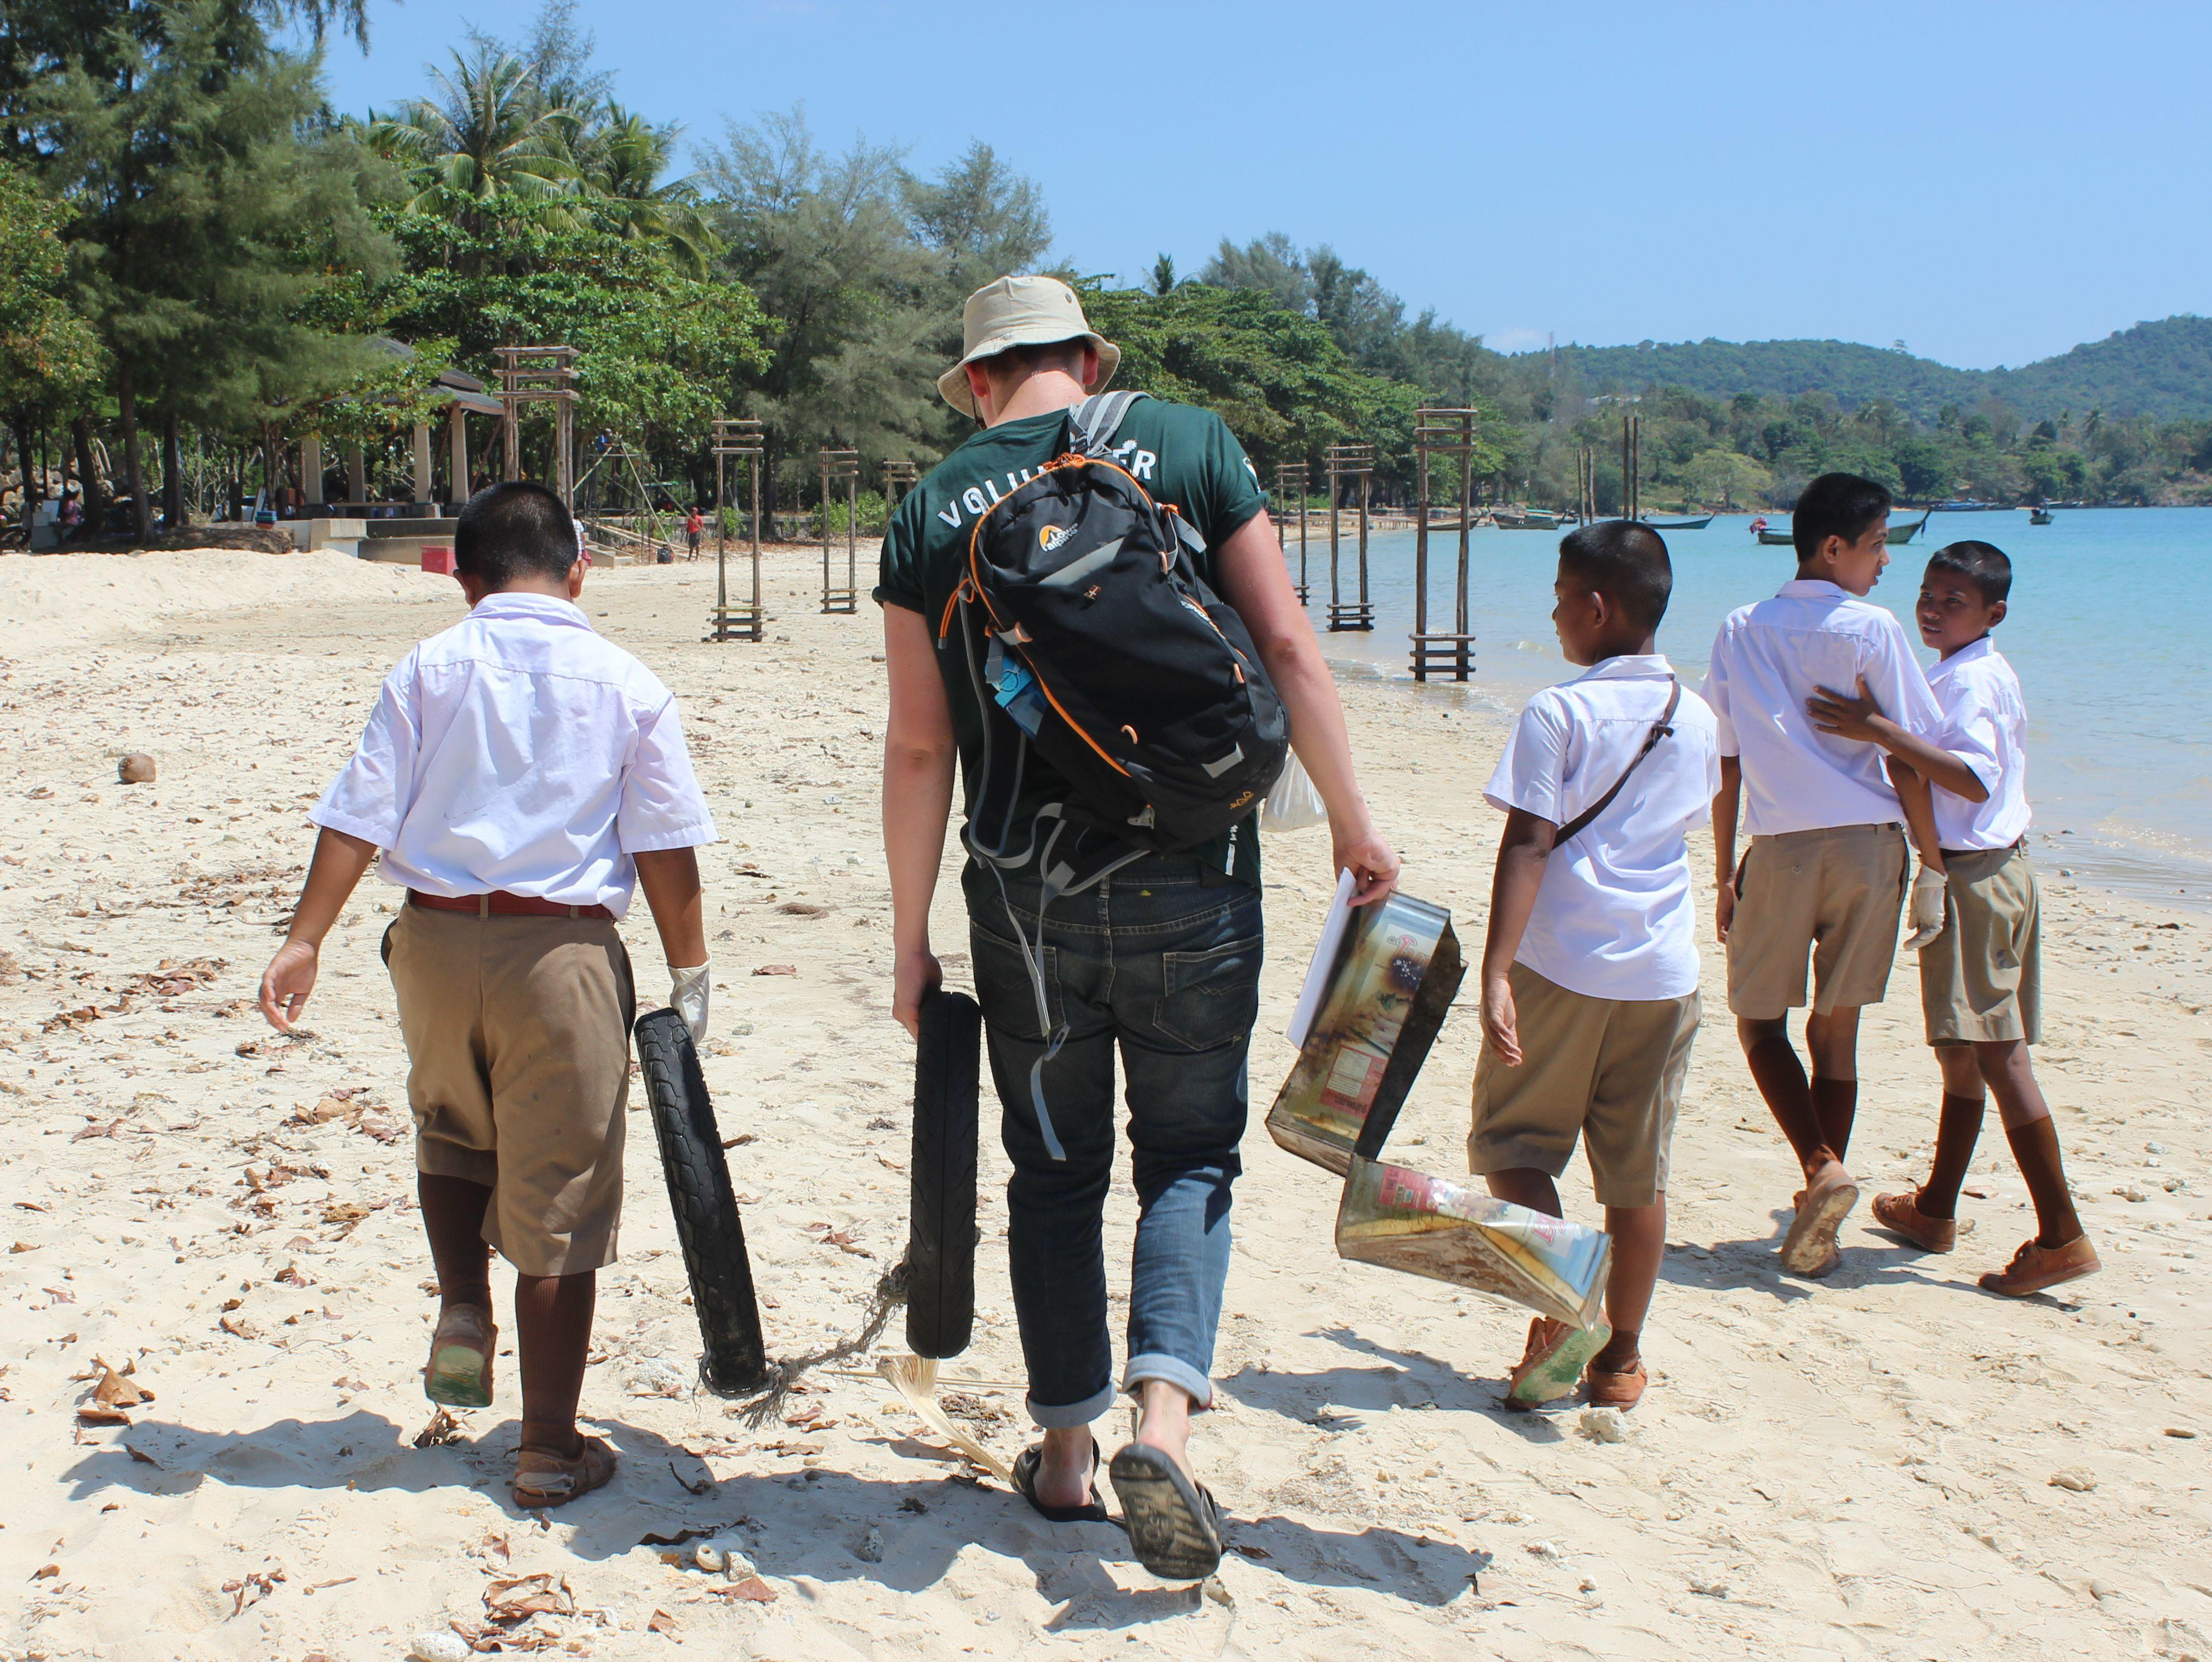 Projects Abroad volunteer is pictured with a group of local children conducting a beach clean up operation as part of his marine conservation work in Thailand.